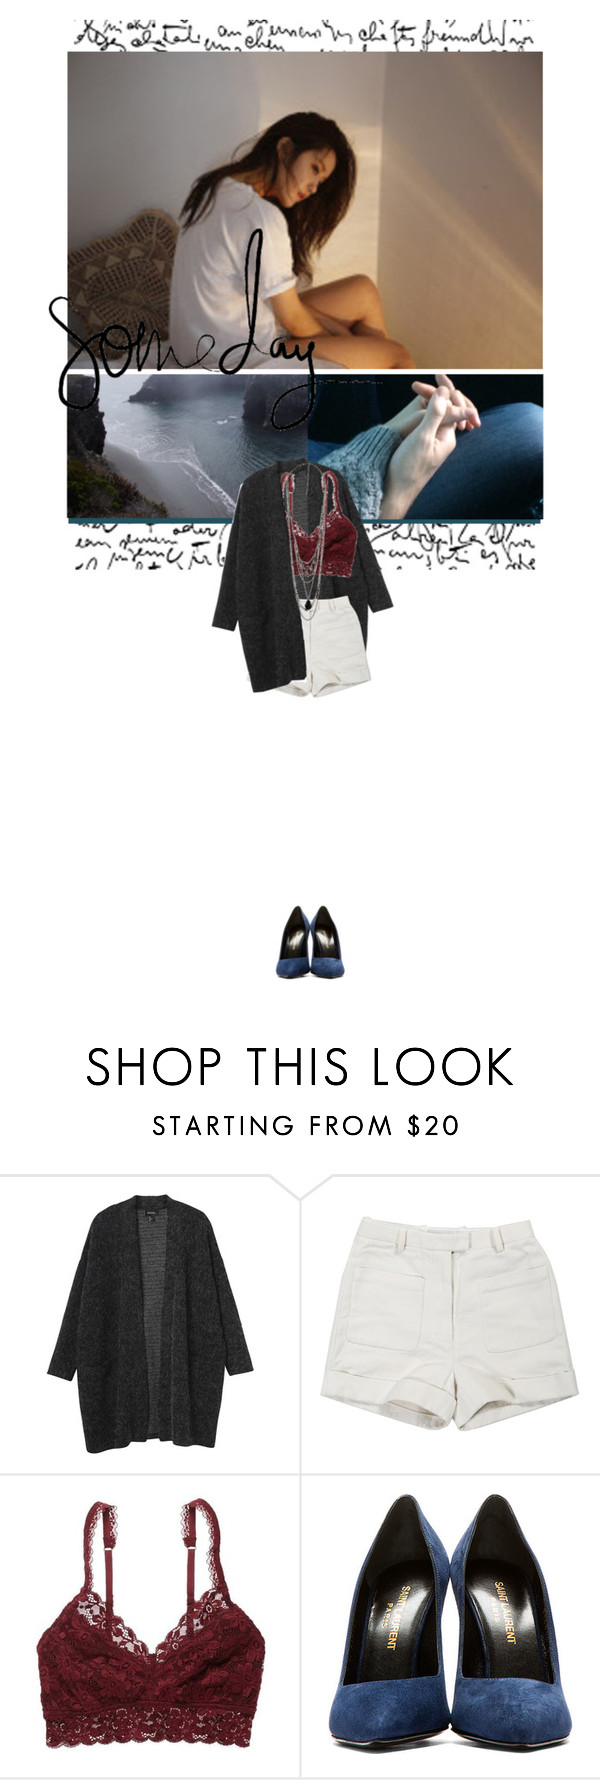 """""""Over Again"""" by tanyahantak ❤ liked on Polyvore featuring Religion Clothing, Monki, 3.1 Phillip Lim, American Eagle Outfitters, Yves Saint Laurent and Forever 21"""